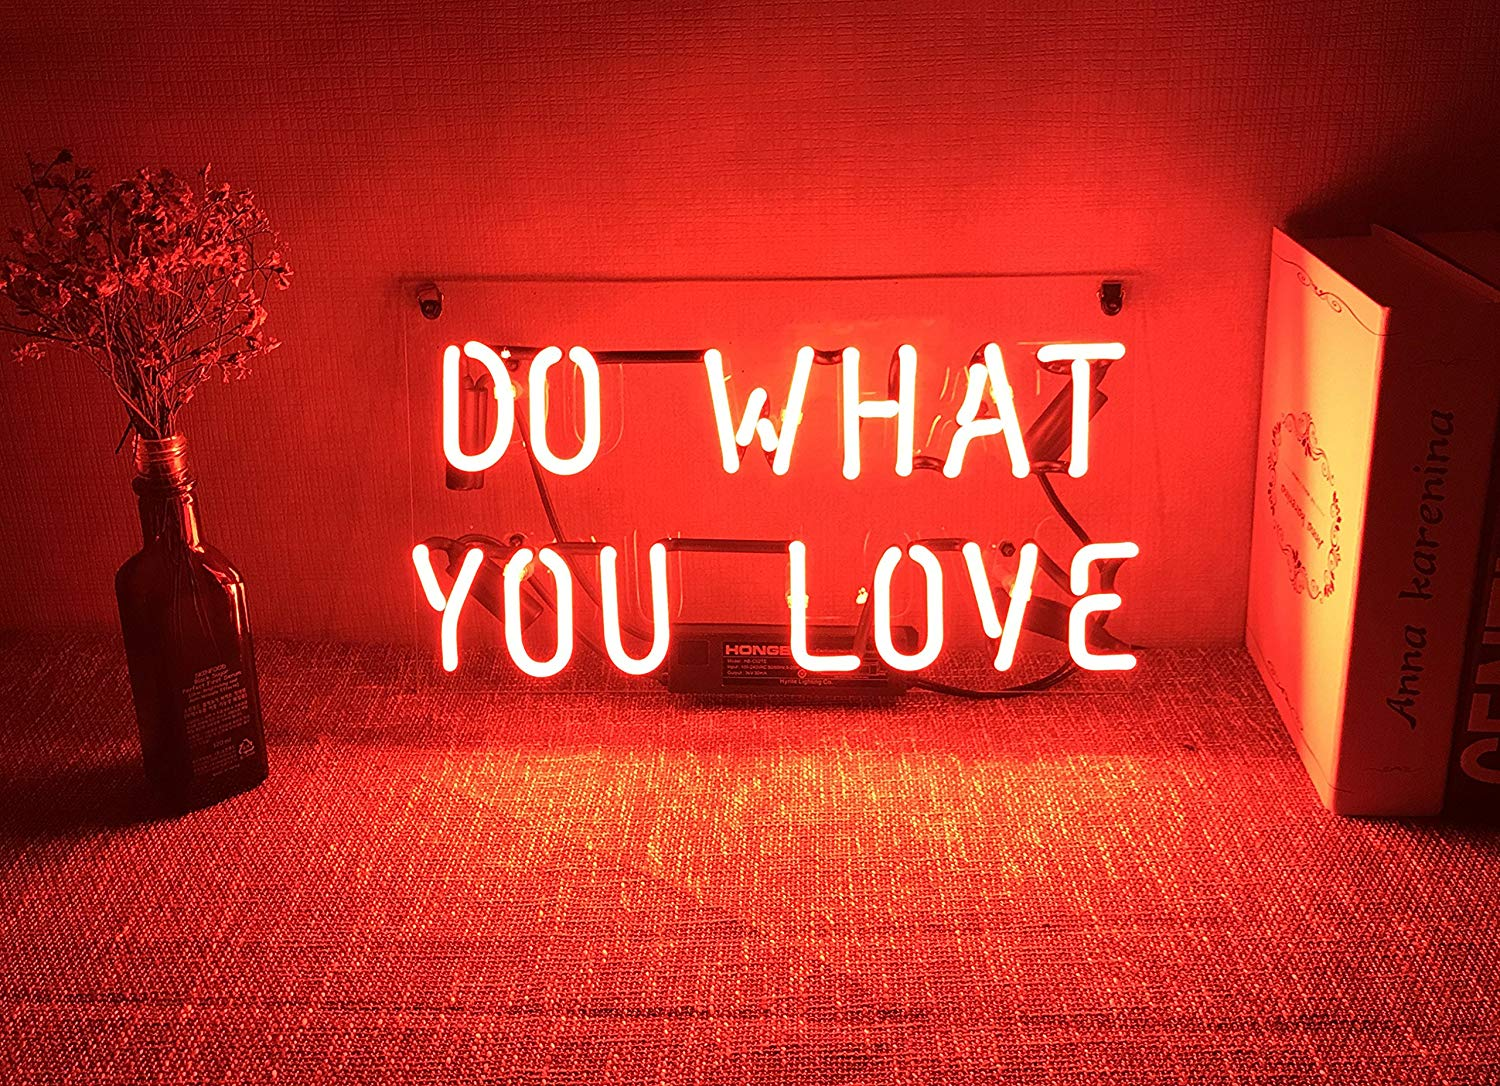 Cool Neon Wall Sign Decorative Lights